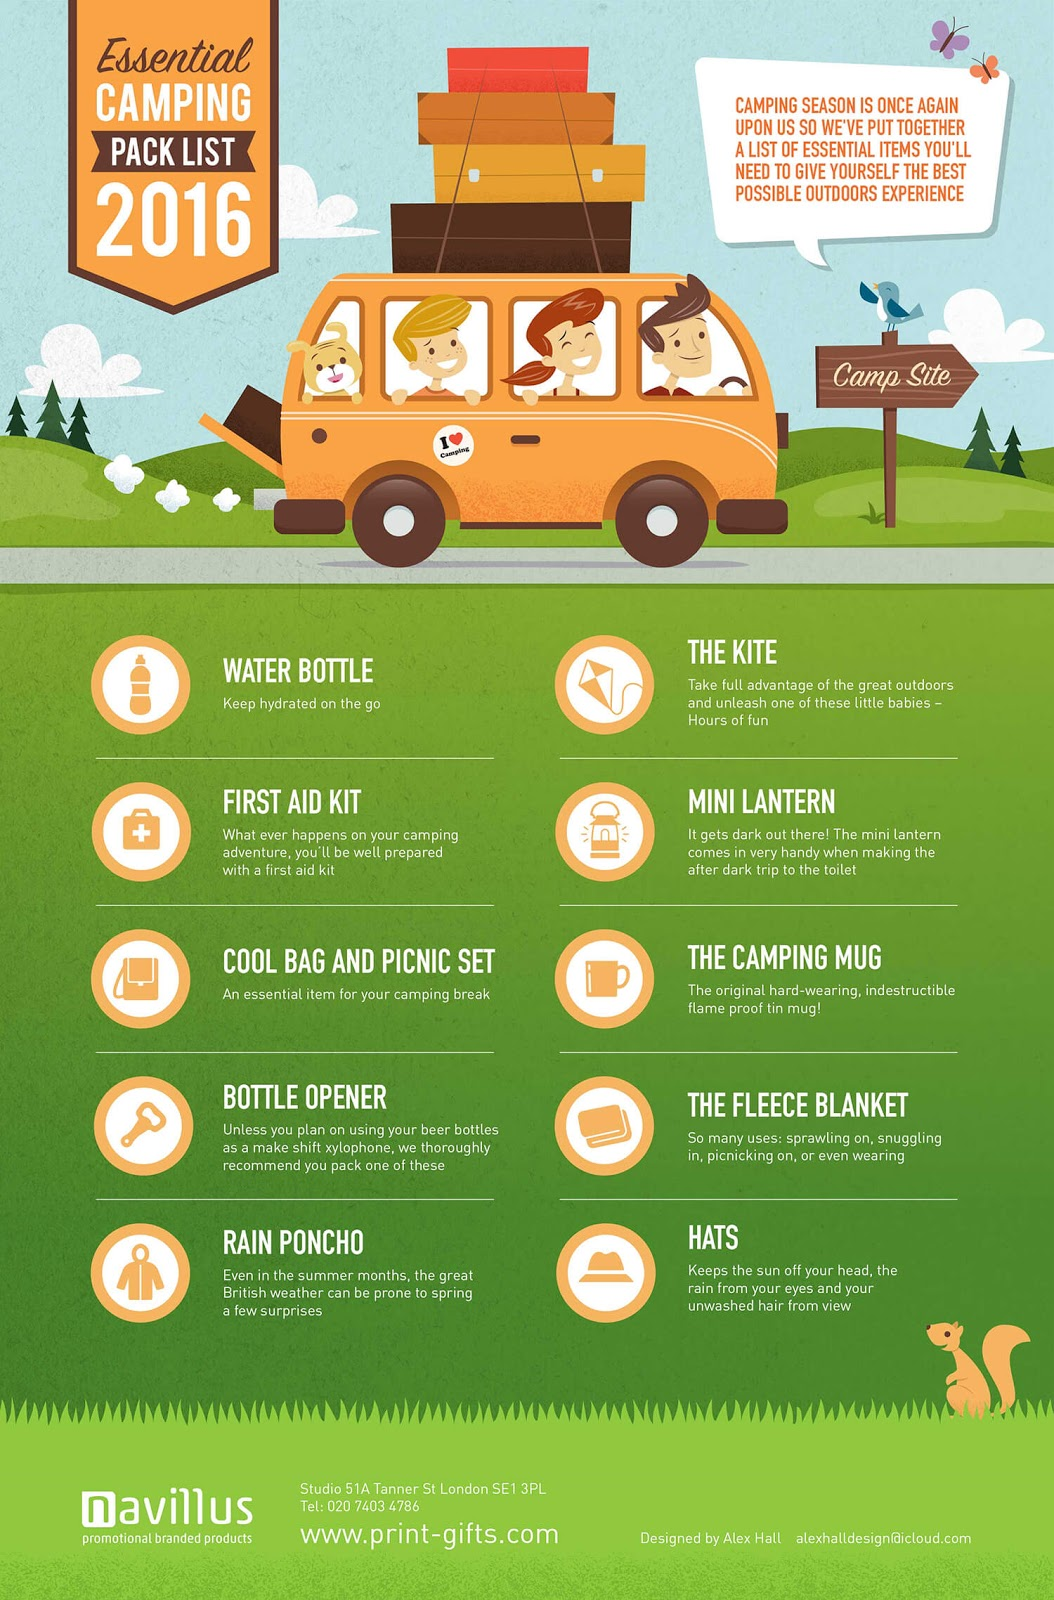 Print Gifts Essential Camping Packing List